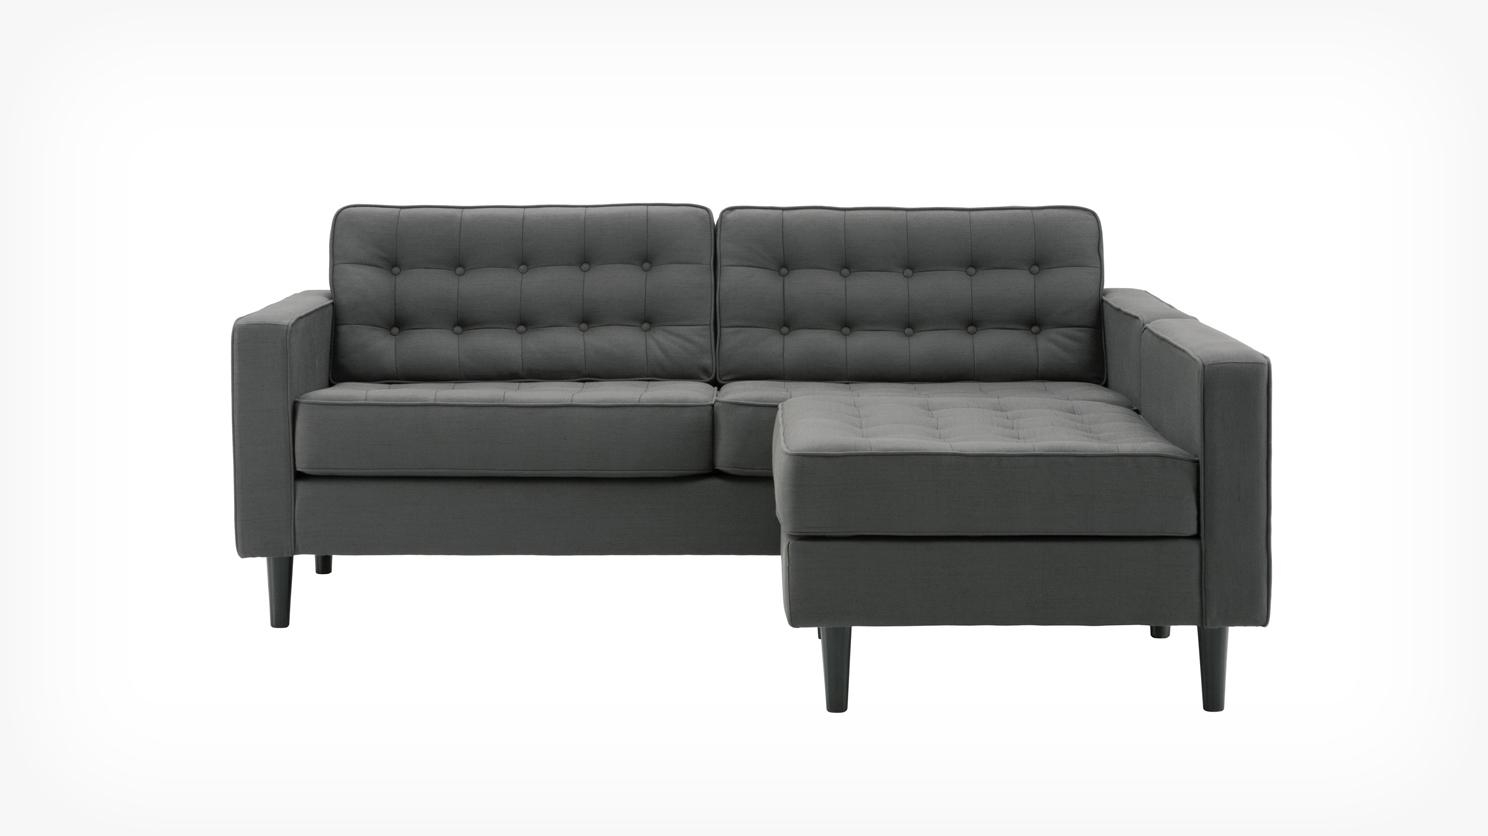 Eq3 | Reverie Apartment 2 Piece Sectional Sofa With Chaise – Fabric With Regard To Apartment Sectional Sofa With Chaise (Image 9 of 15)